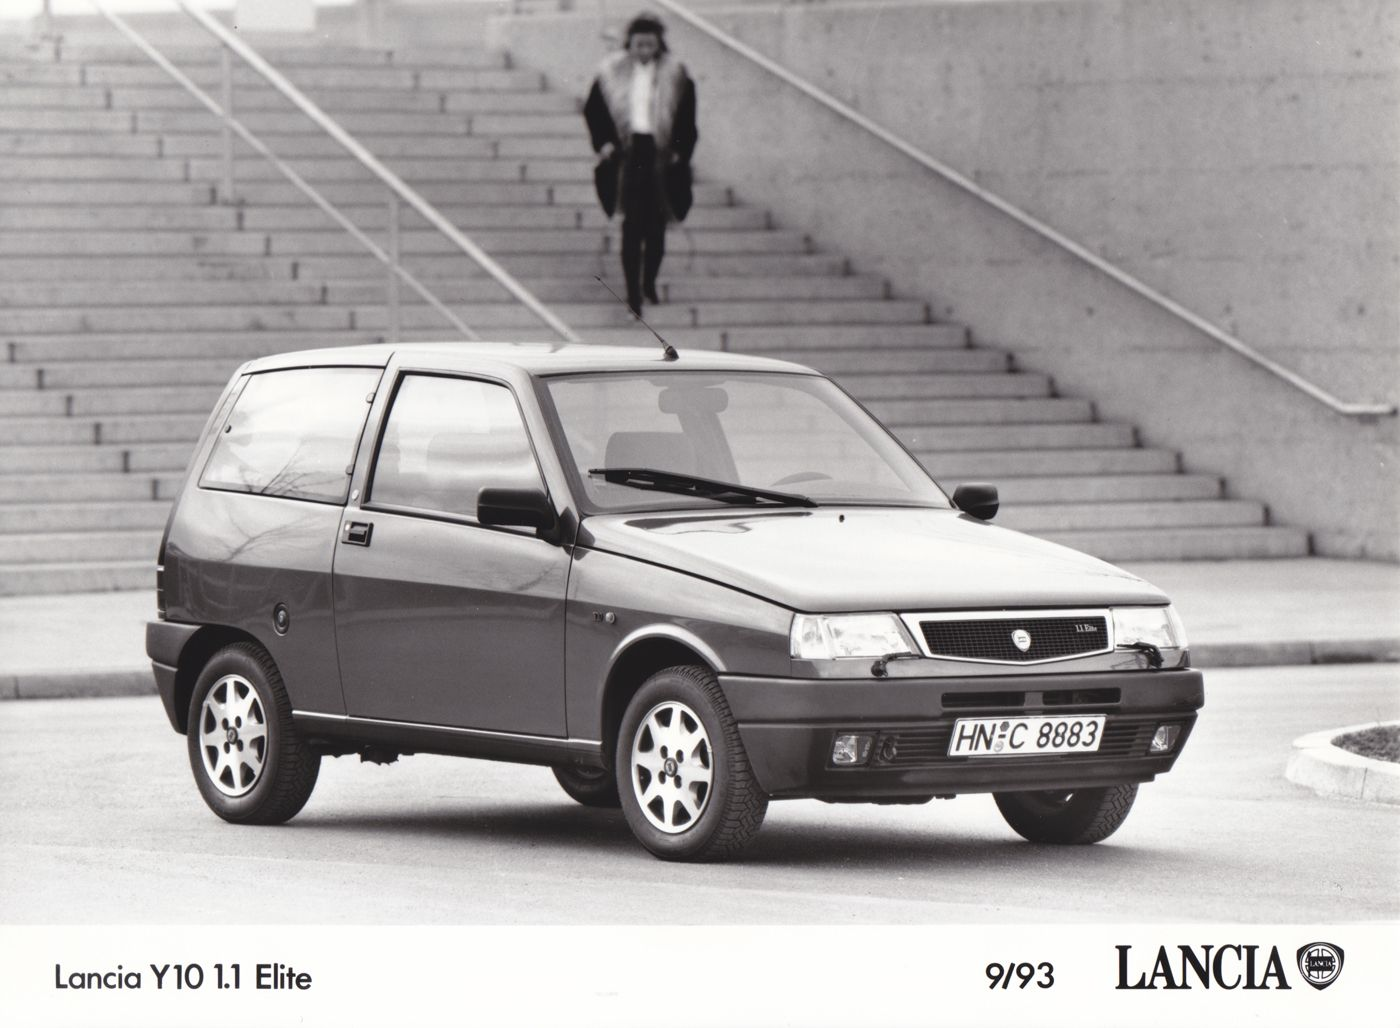 Lancia y10 11 elite 993 car factory press photos pinterest lancia y10 11 elite 993 vanachro Choice Image